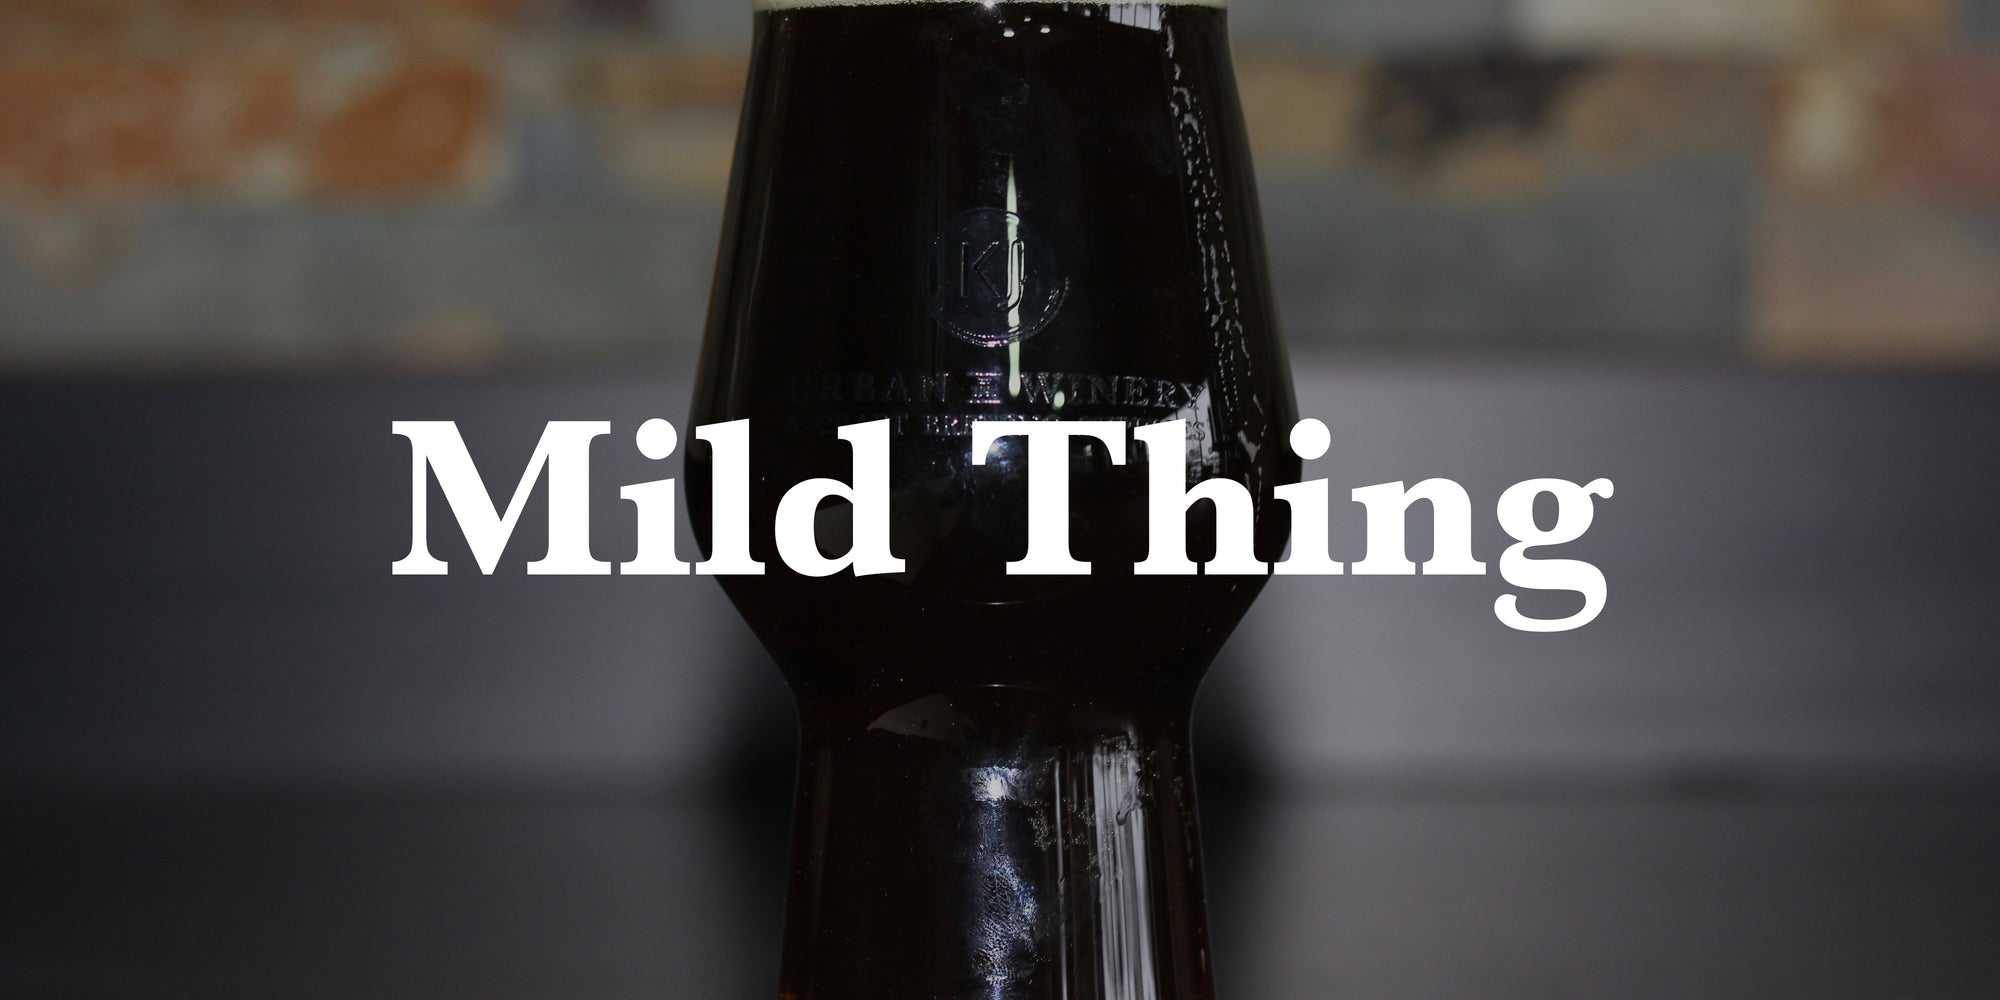 Mild Thing - March 2019 Beer of the Month